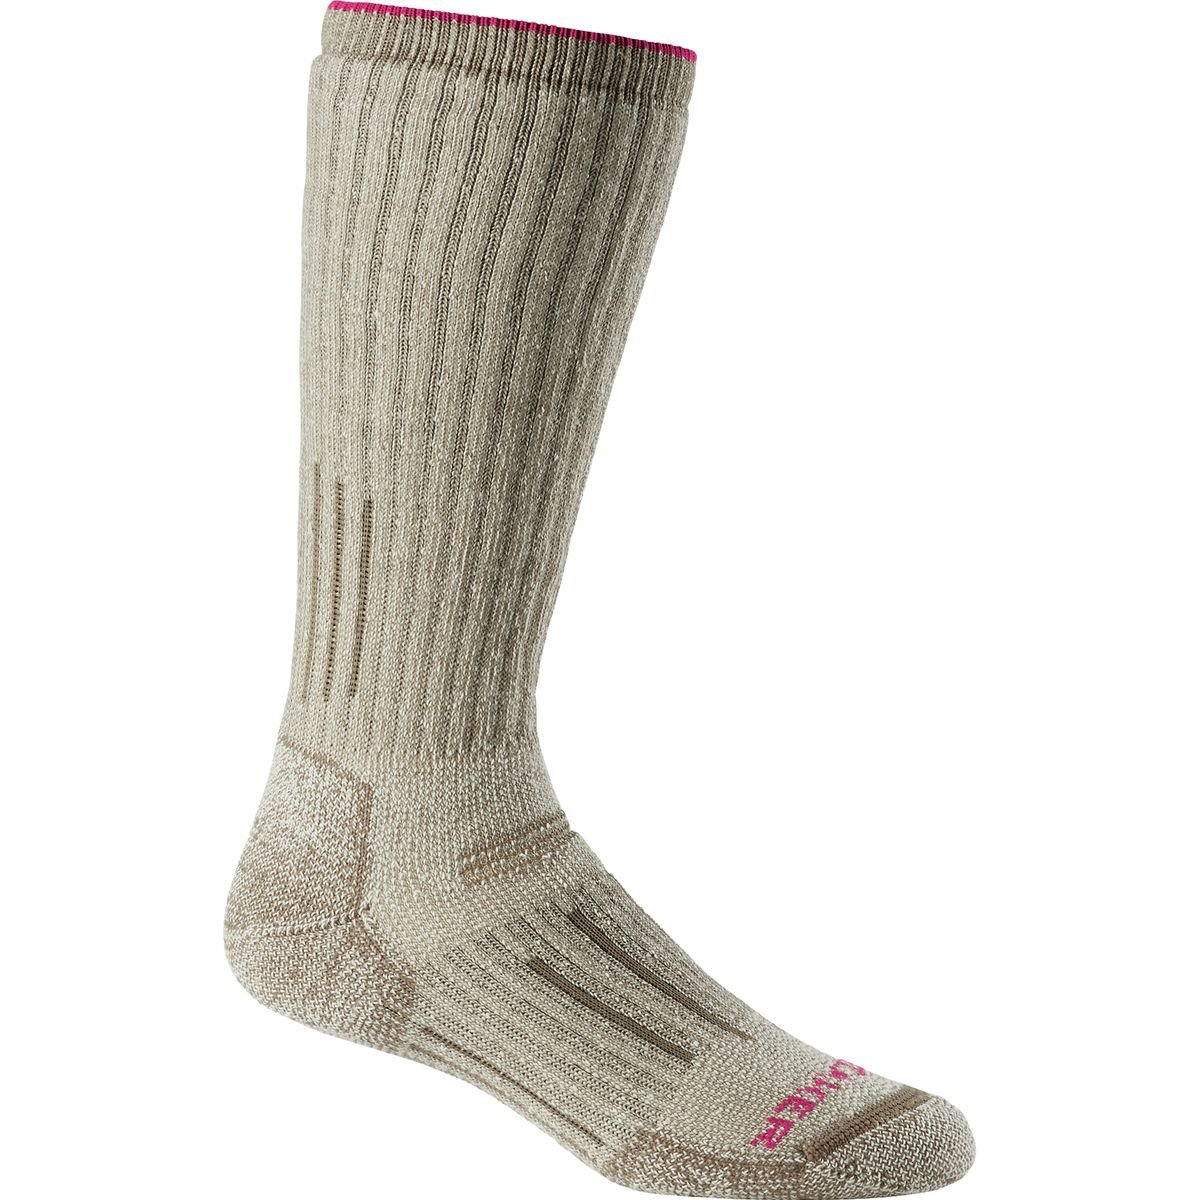 Icebreaker Women's Hunt & Fish Expedition Over The Calf Socks